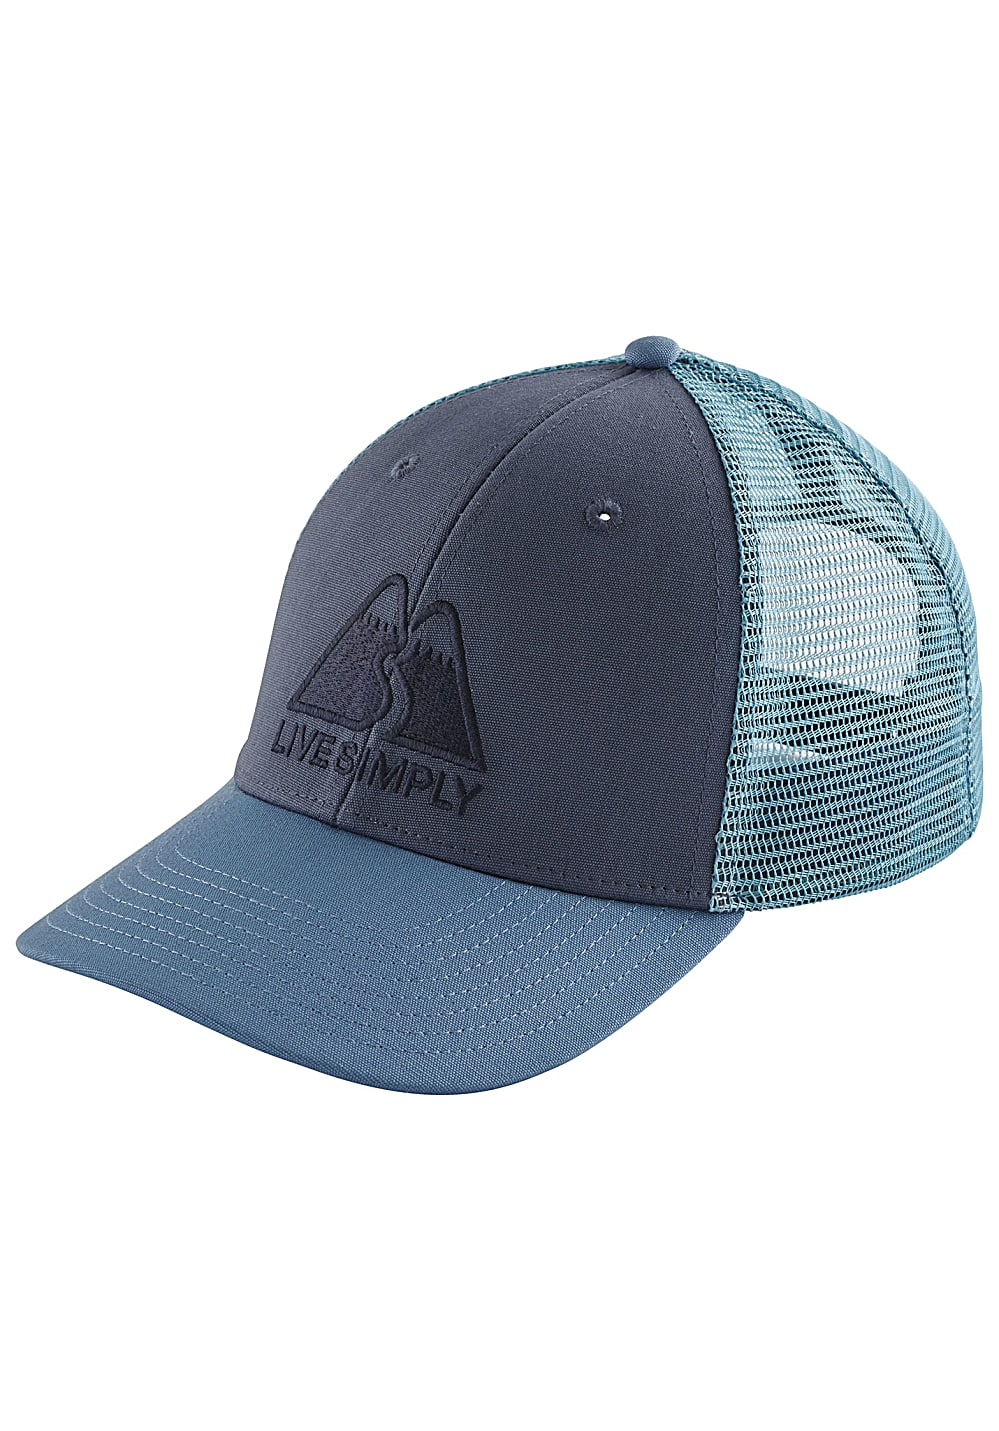 Patagonia Live Simply Winding LoPro Trucker Cap...